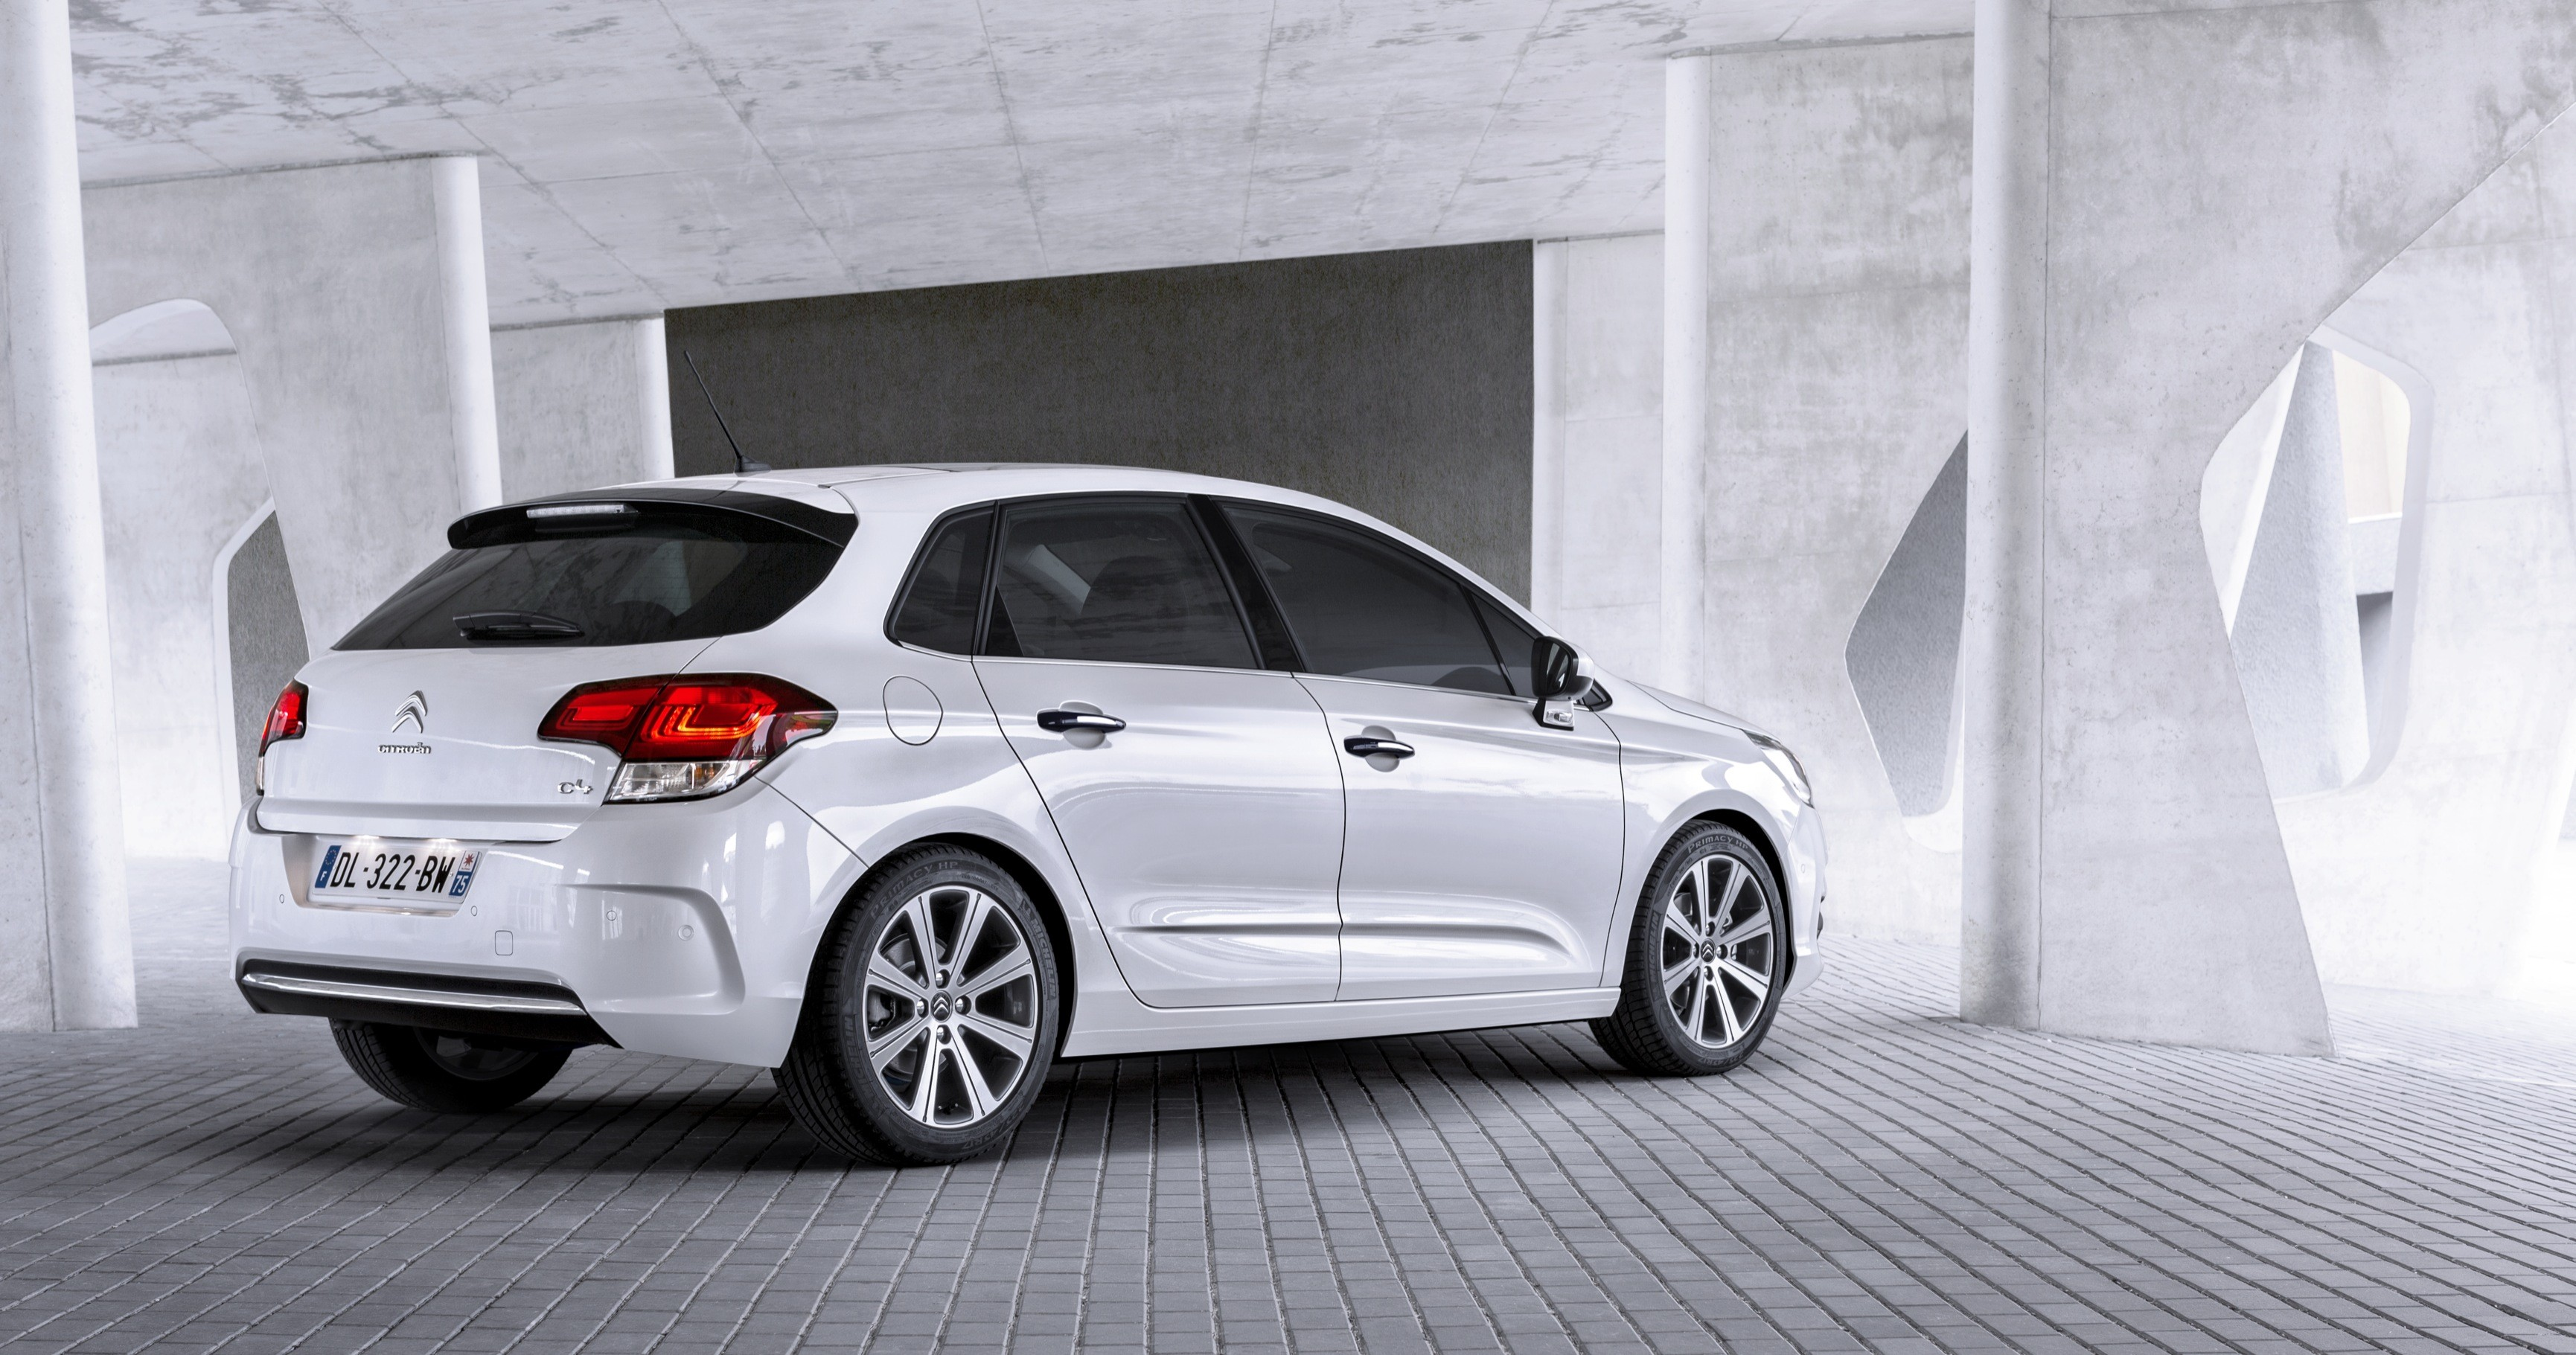 53 The Best 2020 Citroen C4 Redesign and Review